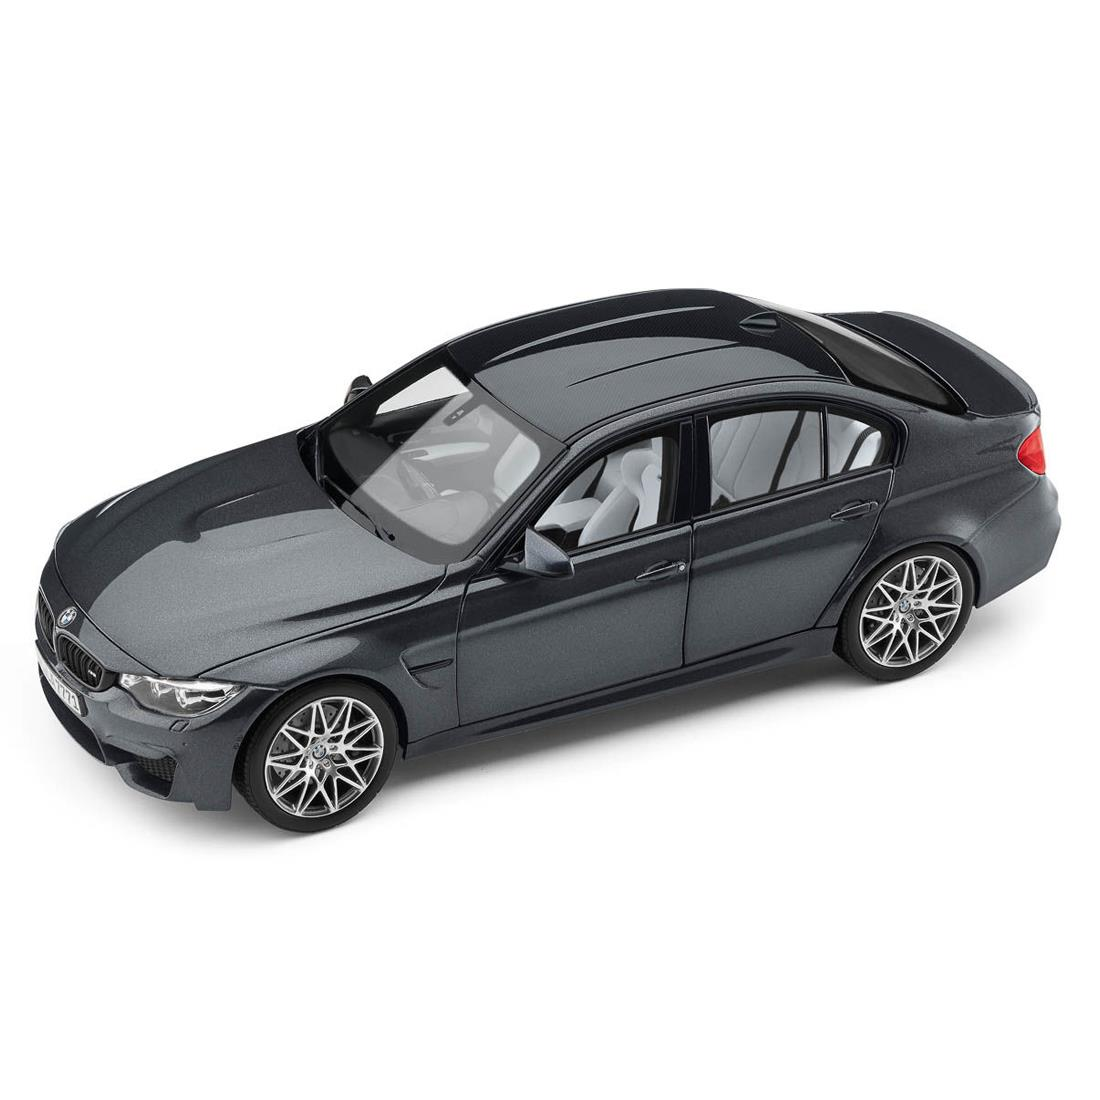 BMW MINIATURE M3 (F80) 1:18